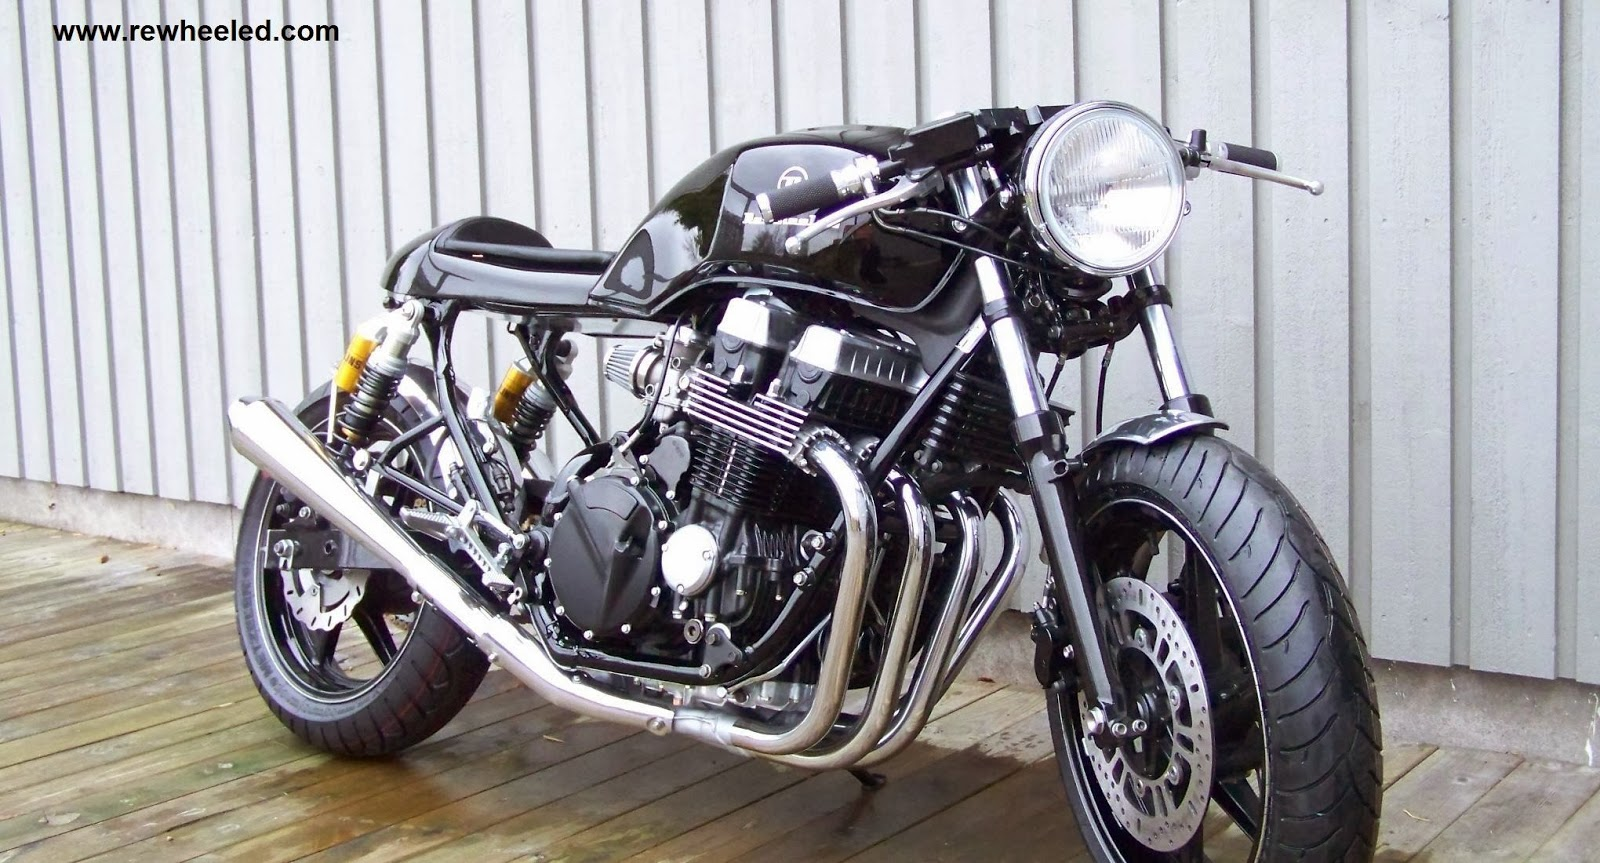 Honda CB 750 Seven Fifty Cafe Racer By Re Cycles Bikes Rewheeled AB